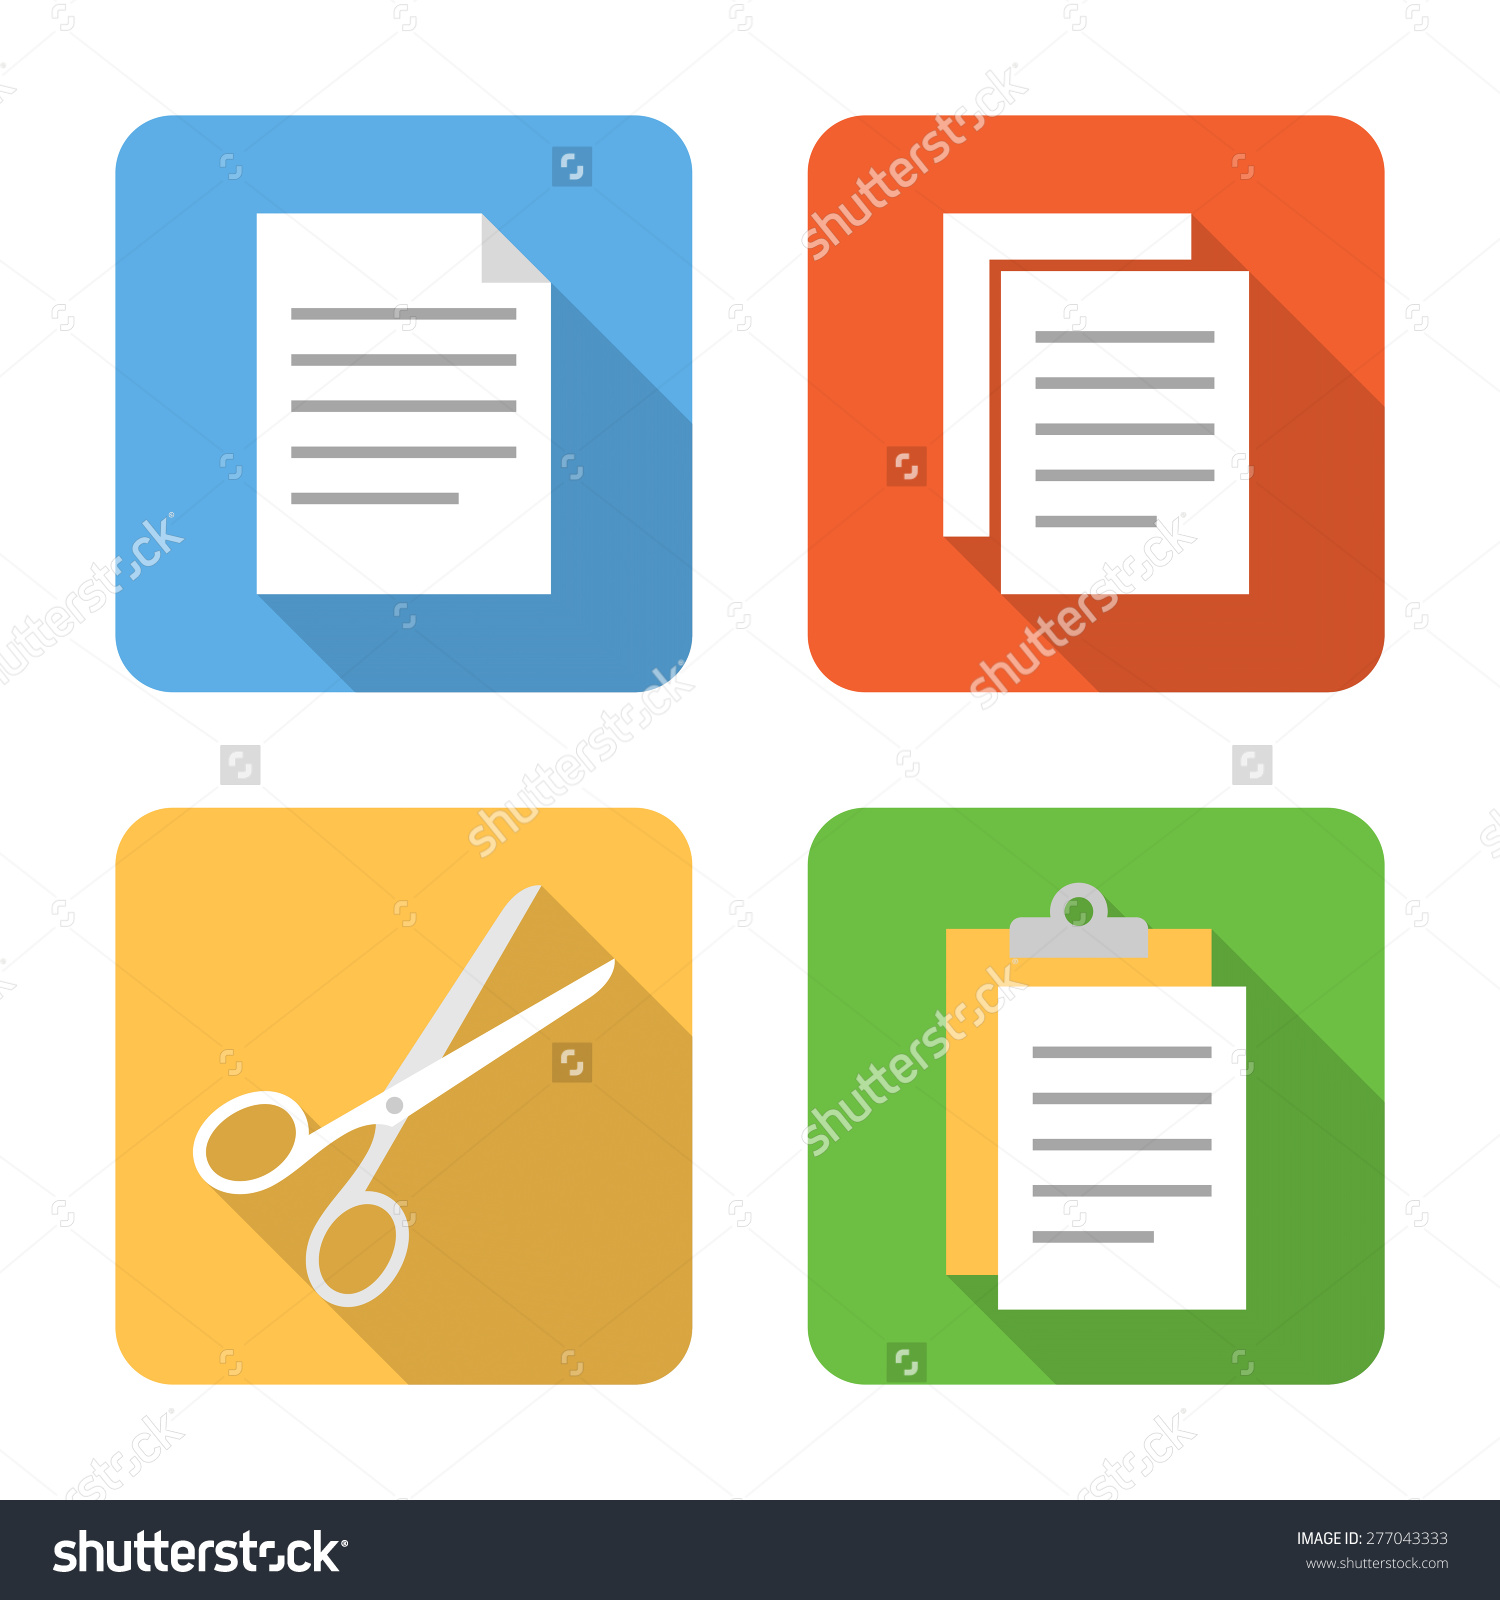 Flat Copy Cut Paste Icons Long Stock Vector 277043333.